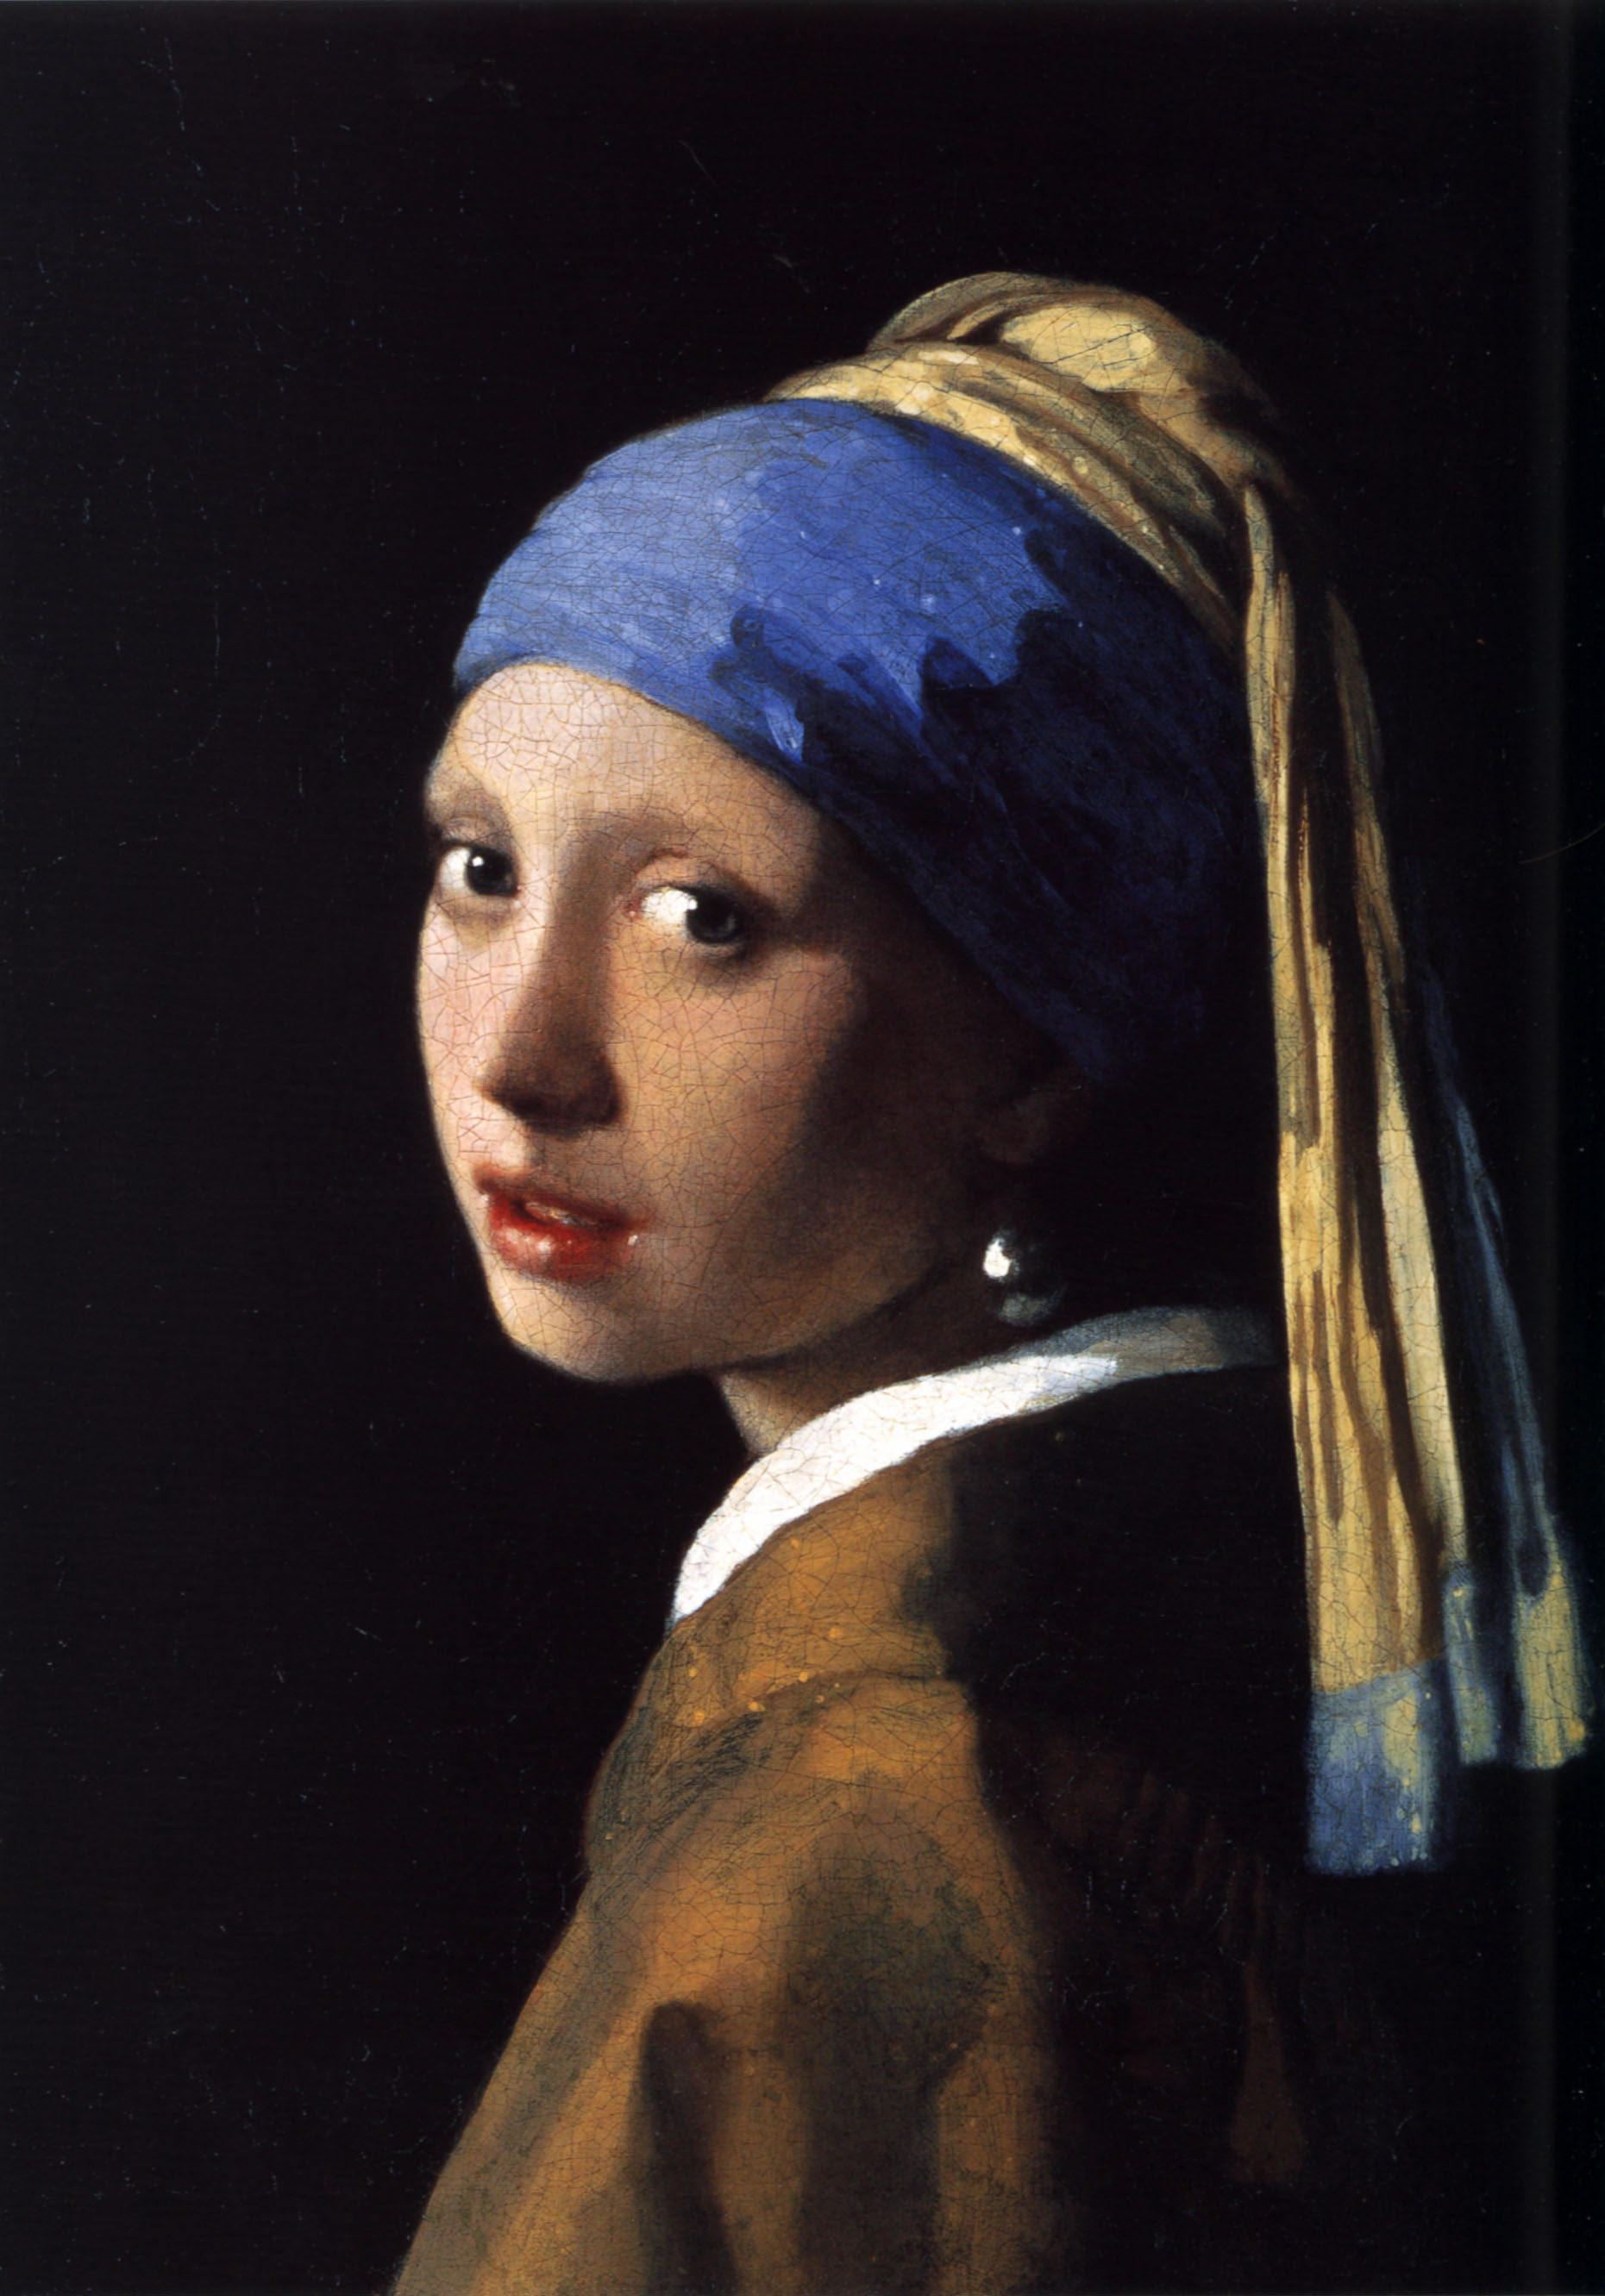 File:Johannes Vermeer (1632-1675) - The Girl With The Pearl ...